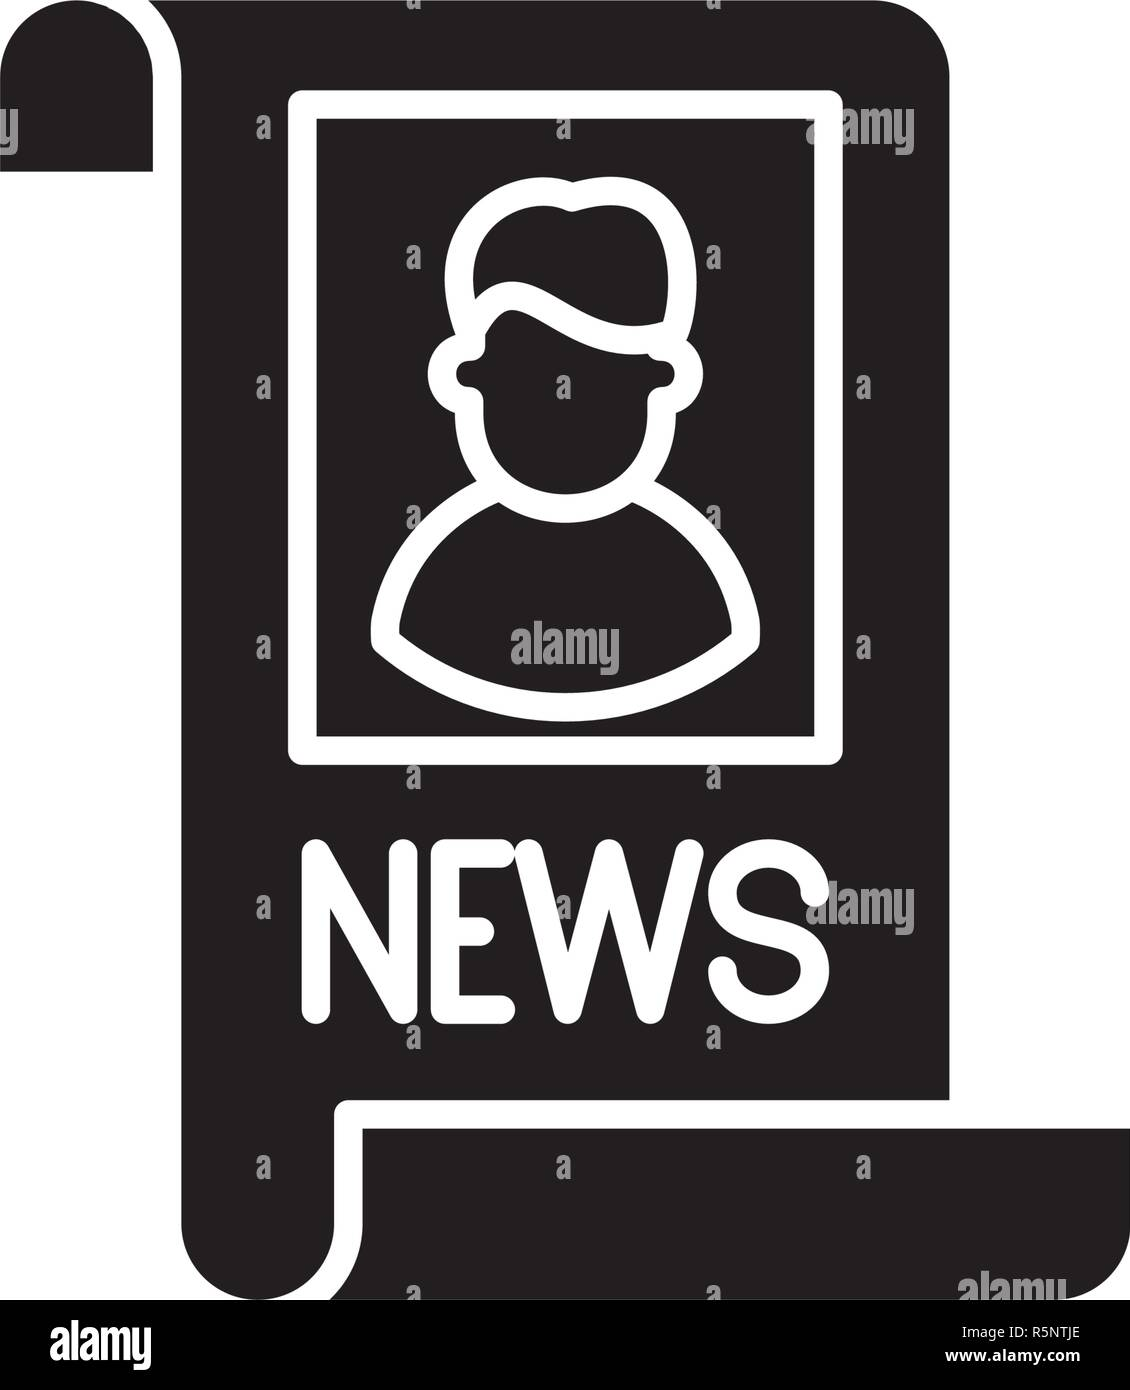 Latest news black icon, vector sign on isolated background. Latest news concept symbol, illustration  - Stock Image